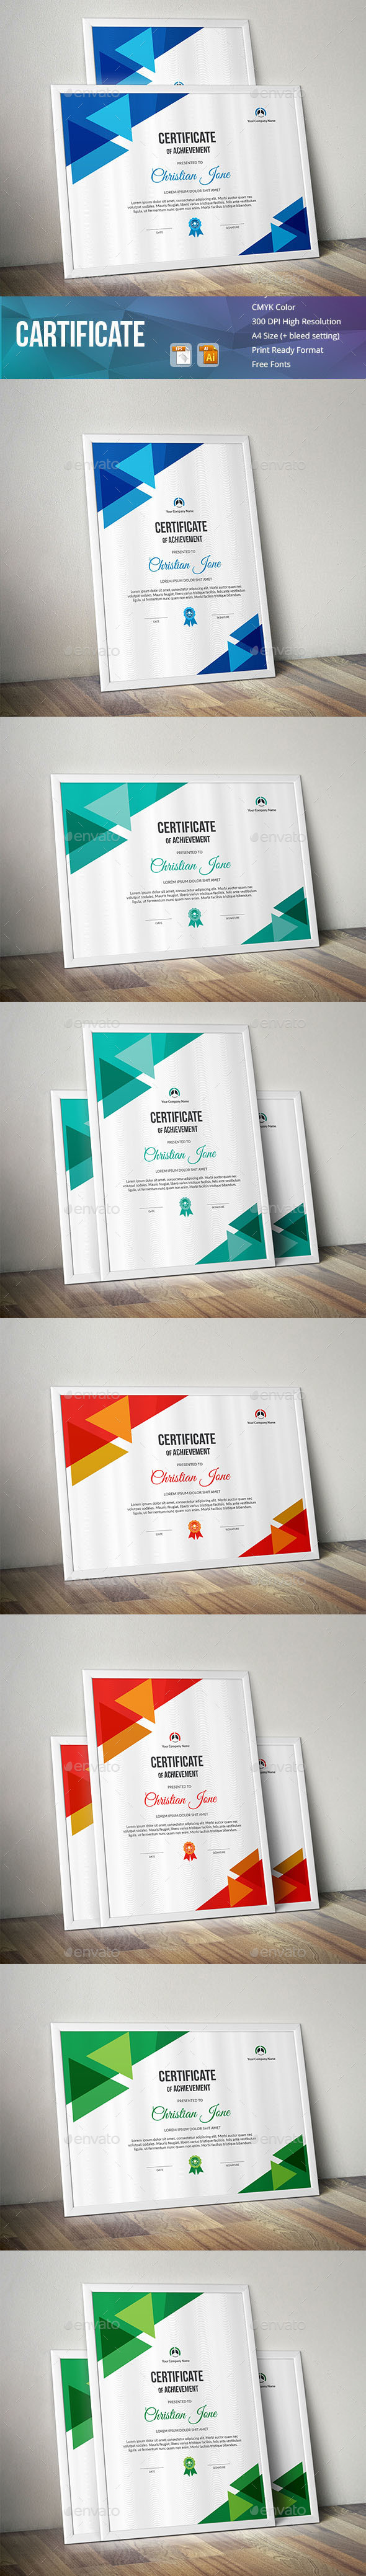 GraphicRiver Cartificate 20982512